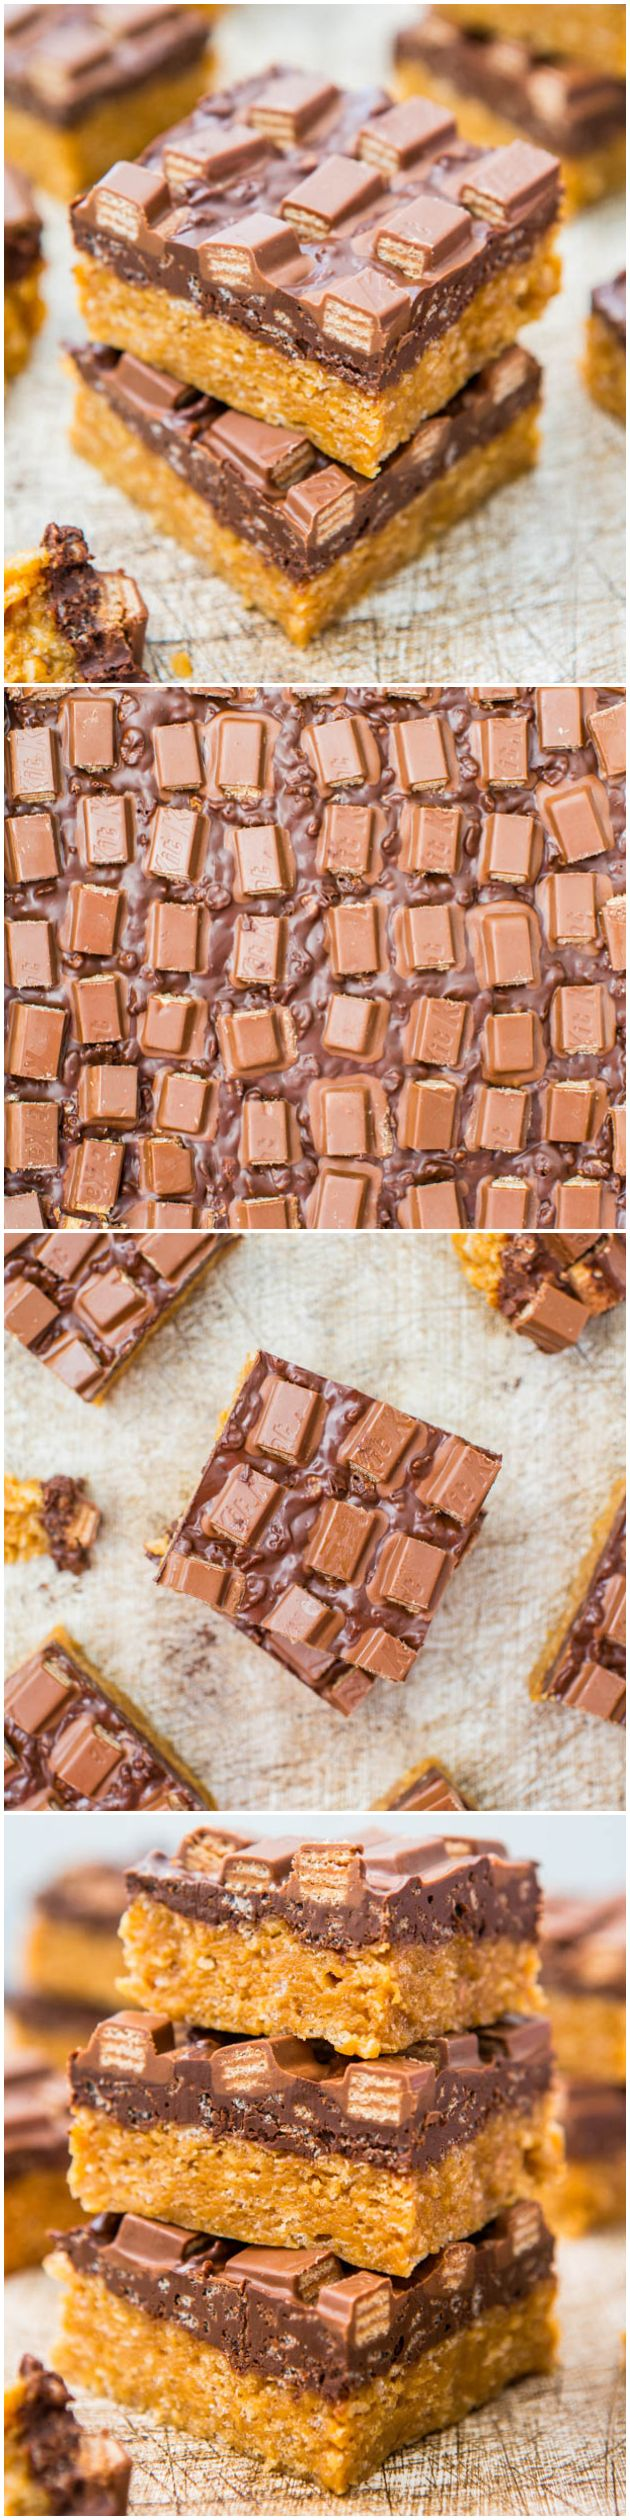 Chocolate Peanut Butter Kit Kat Crunch Bars - Easy, no-bake bars that are packed with peanut butter, chocolate & topped off with a wall of KitKats!  At averiecooks.com